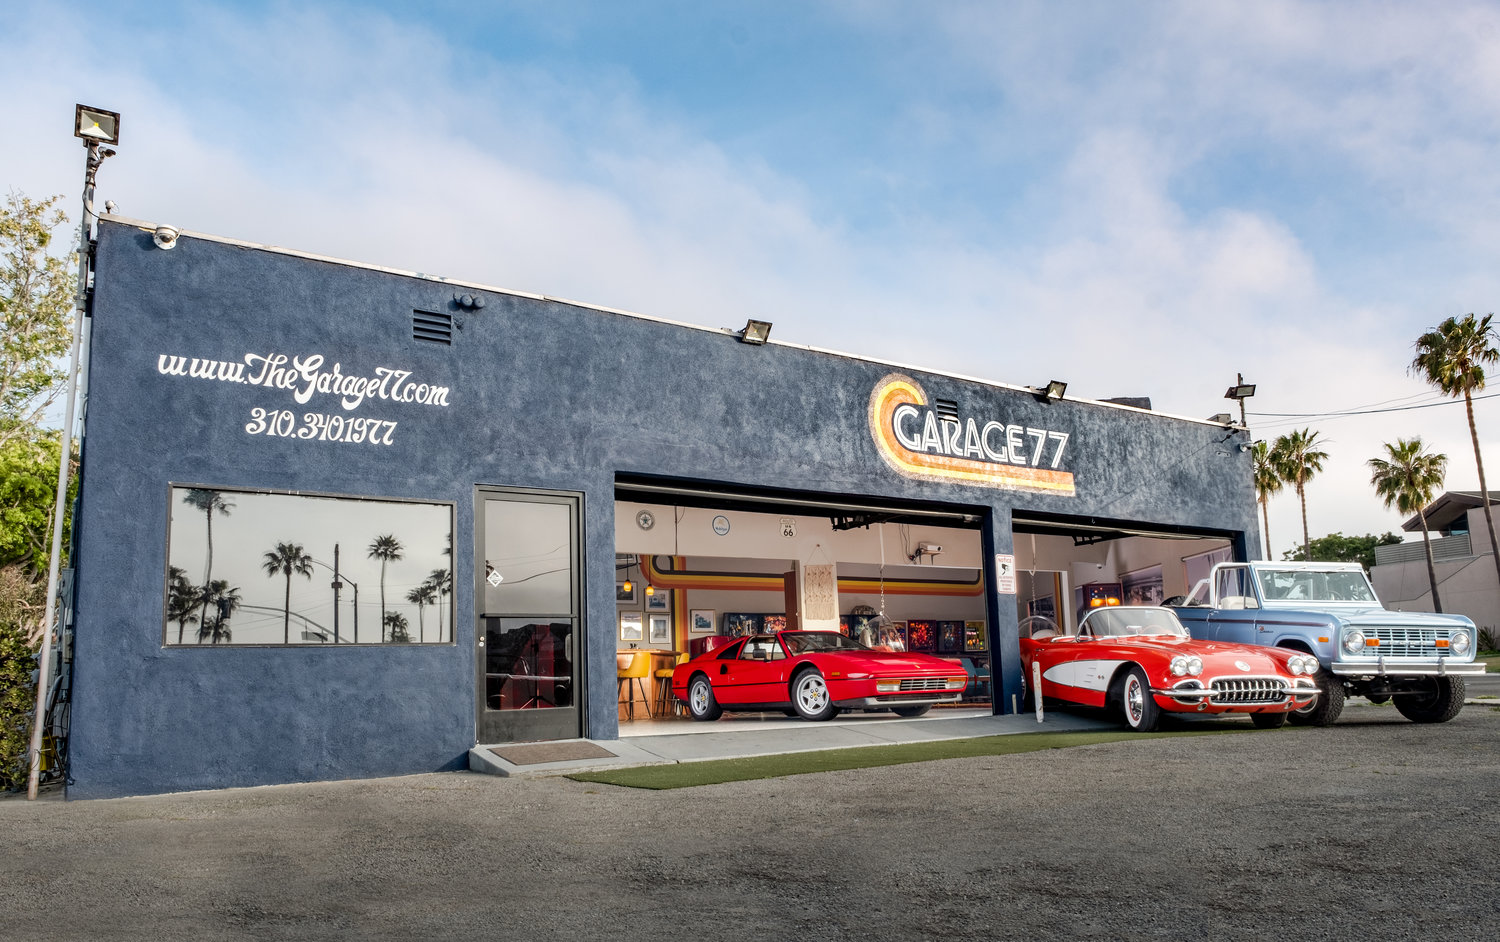 Check out the Fleet. - Our current starting line up of classic cars includes a '59 Corvette C1, '75 Ford Bronco, '87 Ferrari 328 GTS, '56 Porsche 356 Speedster Tribute, '67 Chevy Camaro, '61 Lincoln Continental, '81 DMC Delorean and '77 Jeep CJ-5. Our cars are your cars. Contact us to learn how you can take one for a spin on demand.